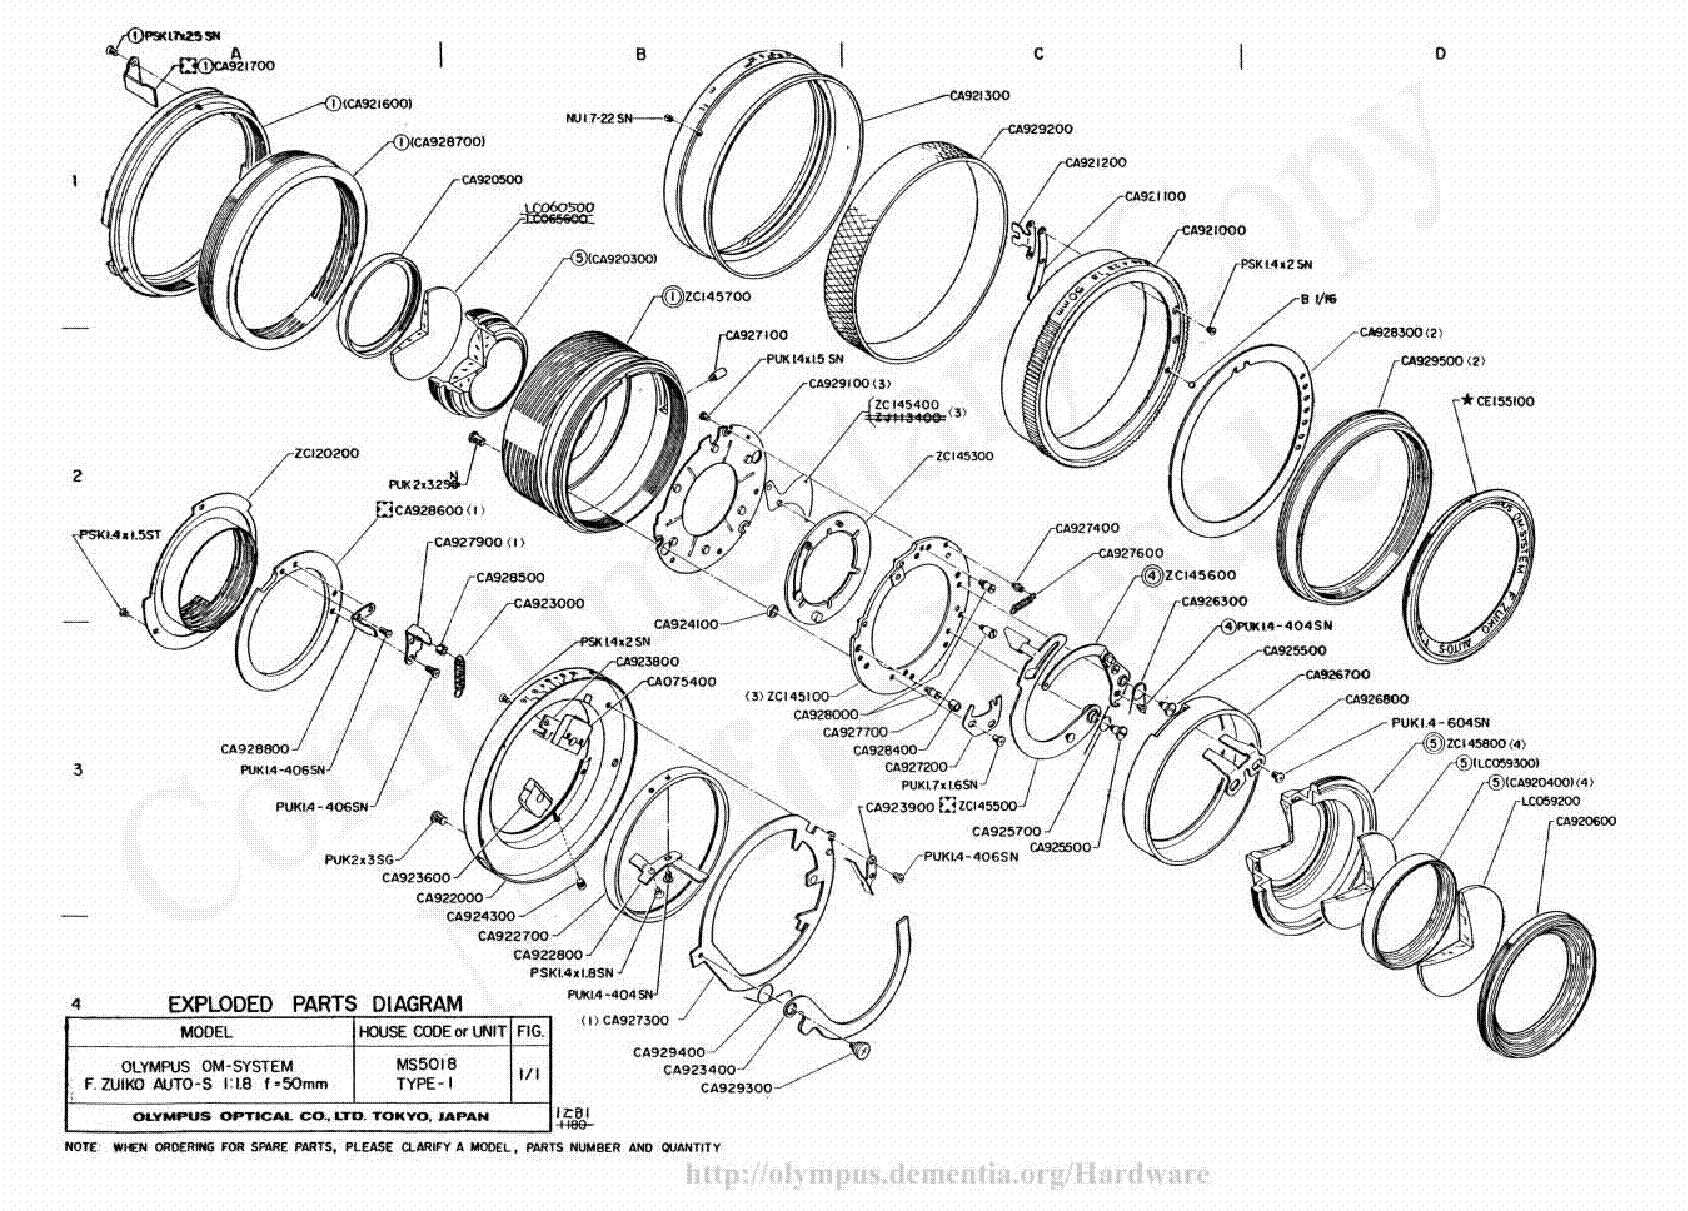 OLYMPUS 50MM F1.8 EXPLODED PARTS DIAGRAM Service Manual